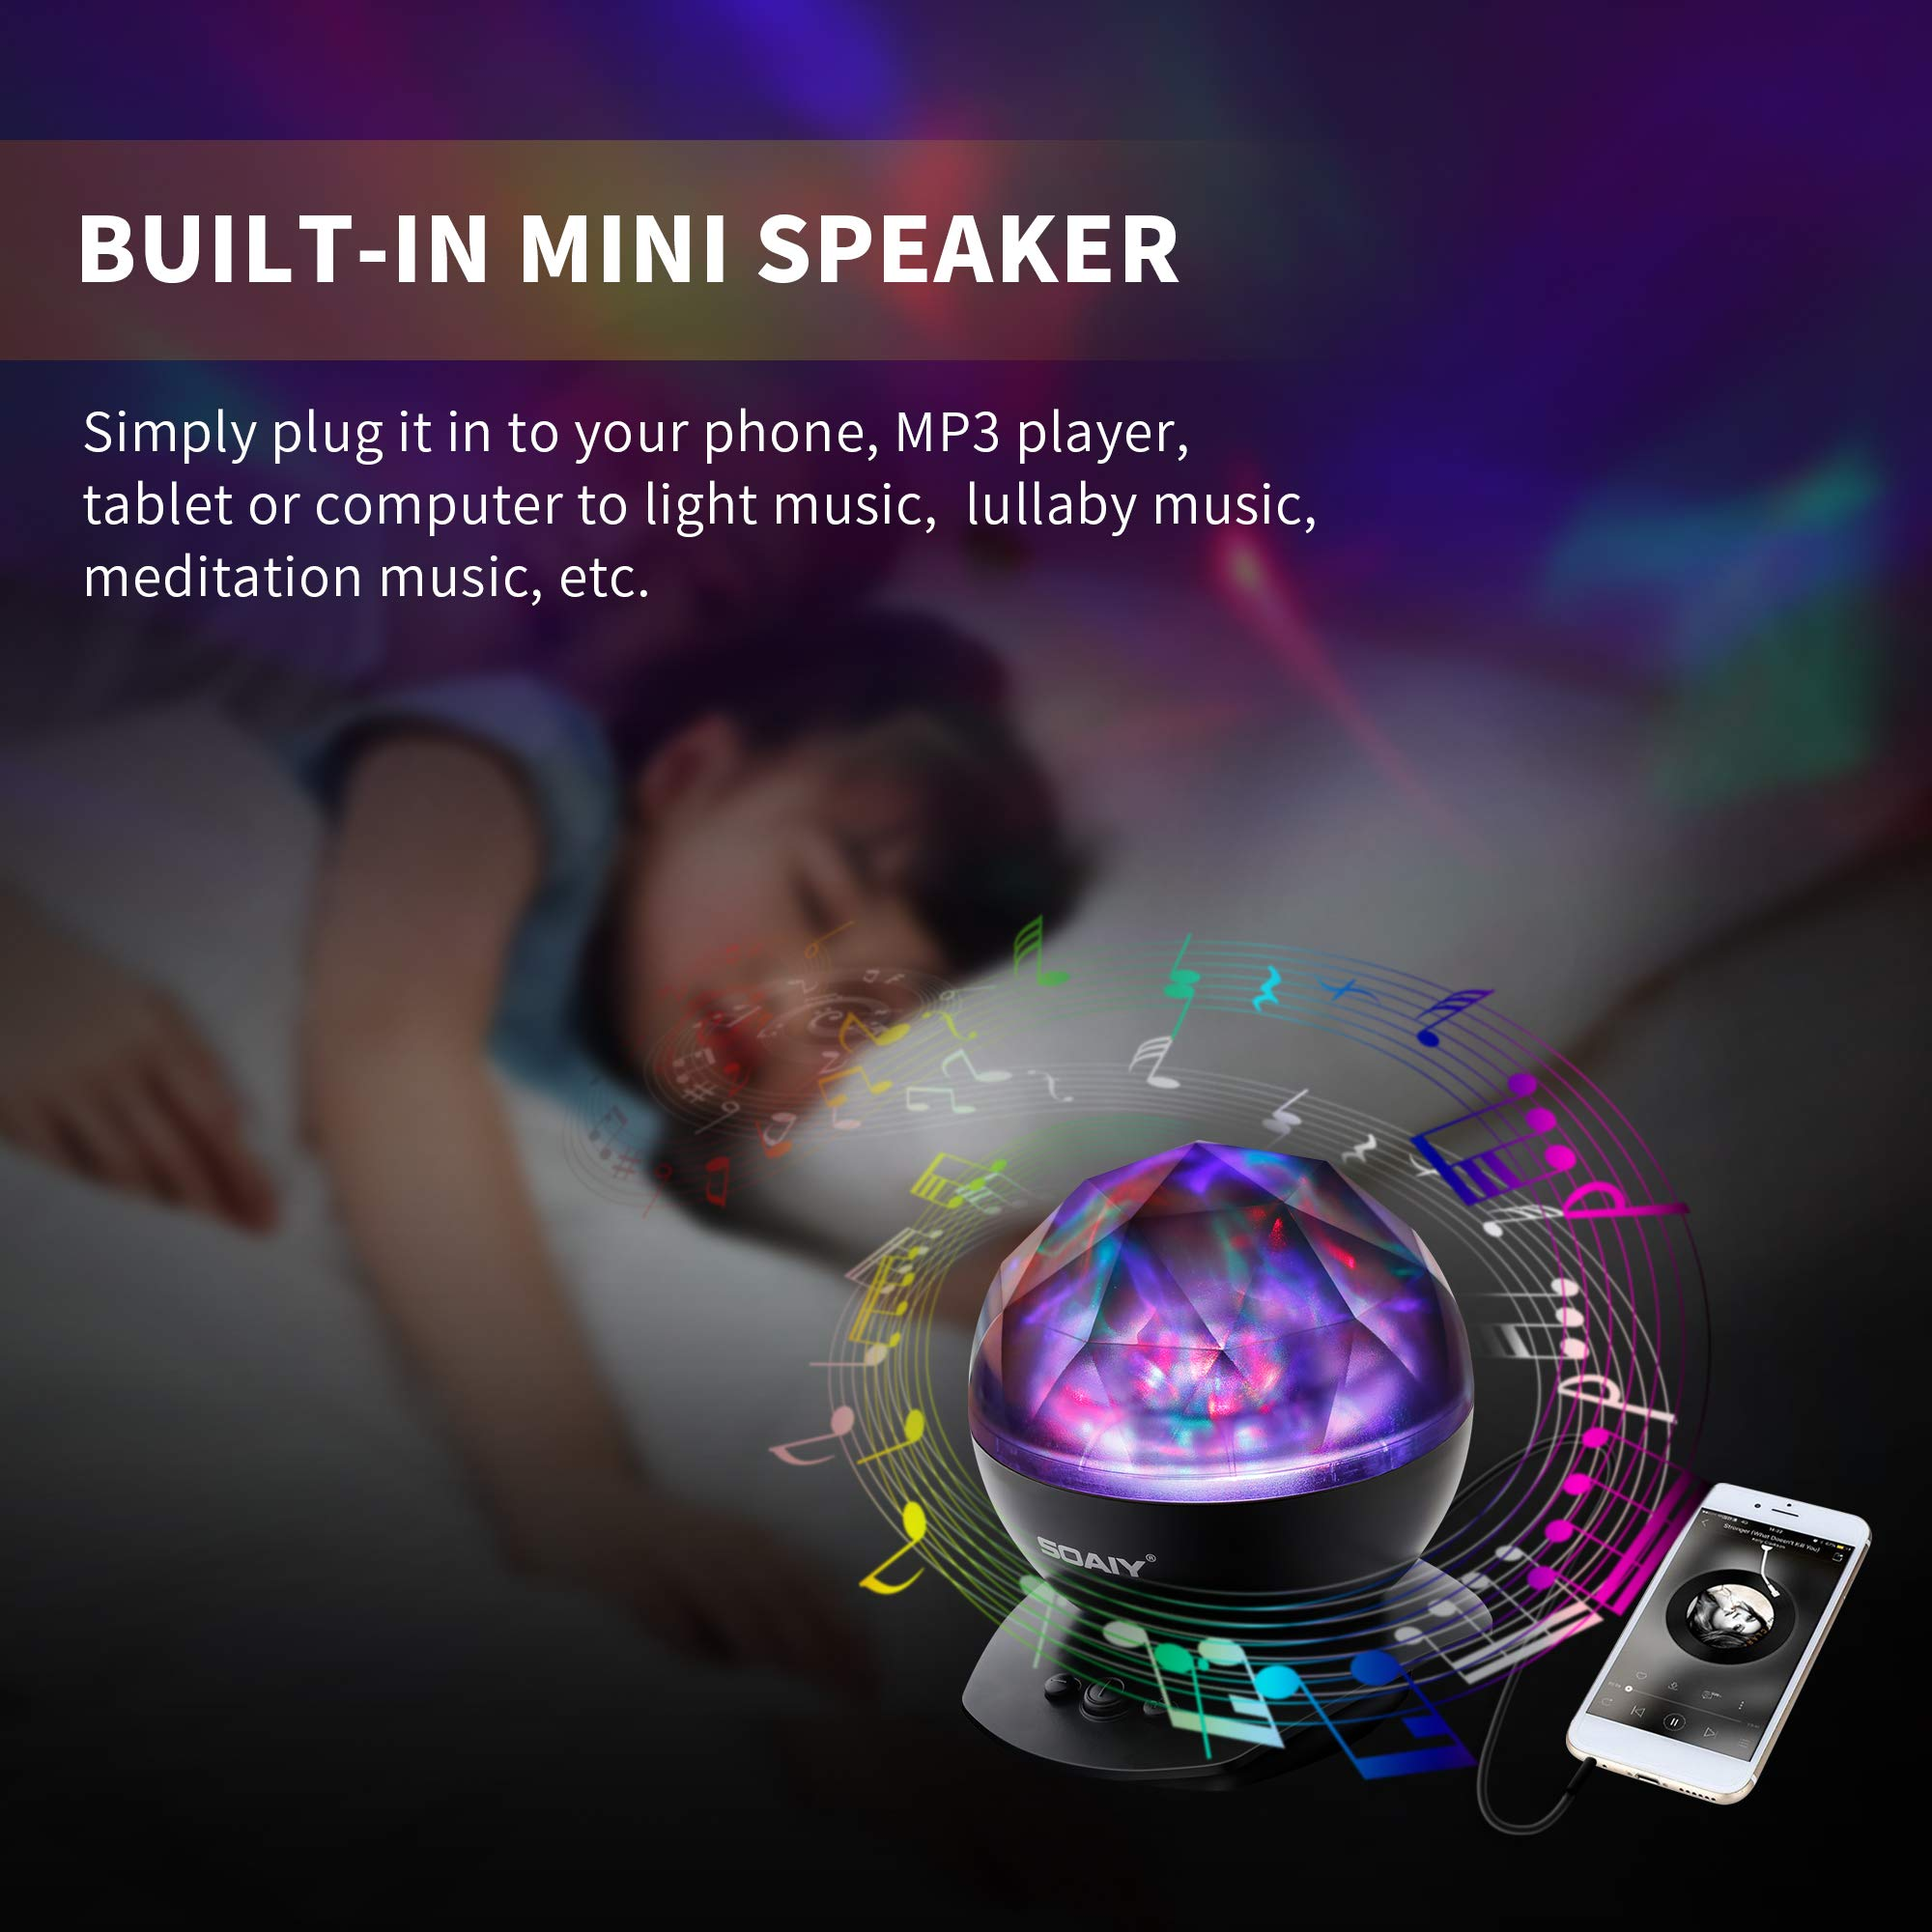 [Upgraded Version] SOAIY Soothing Aurora LED Night Light Projector with UL Certified Adapter,Timer,Remote,Music Speaker,8 Lighting Modes,Relaxing Light Show,Mood Lamp for Baby Kids, Adults,Living Room by SOAIY (Image #6)